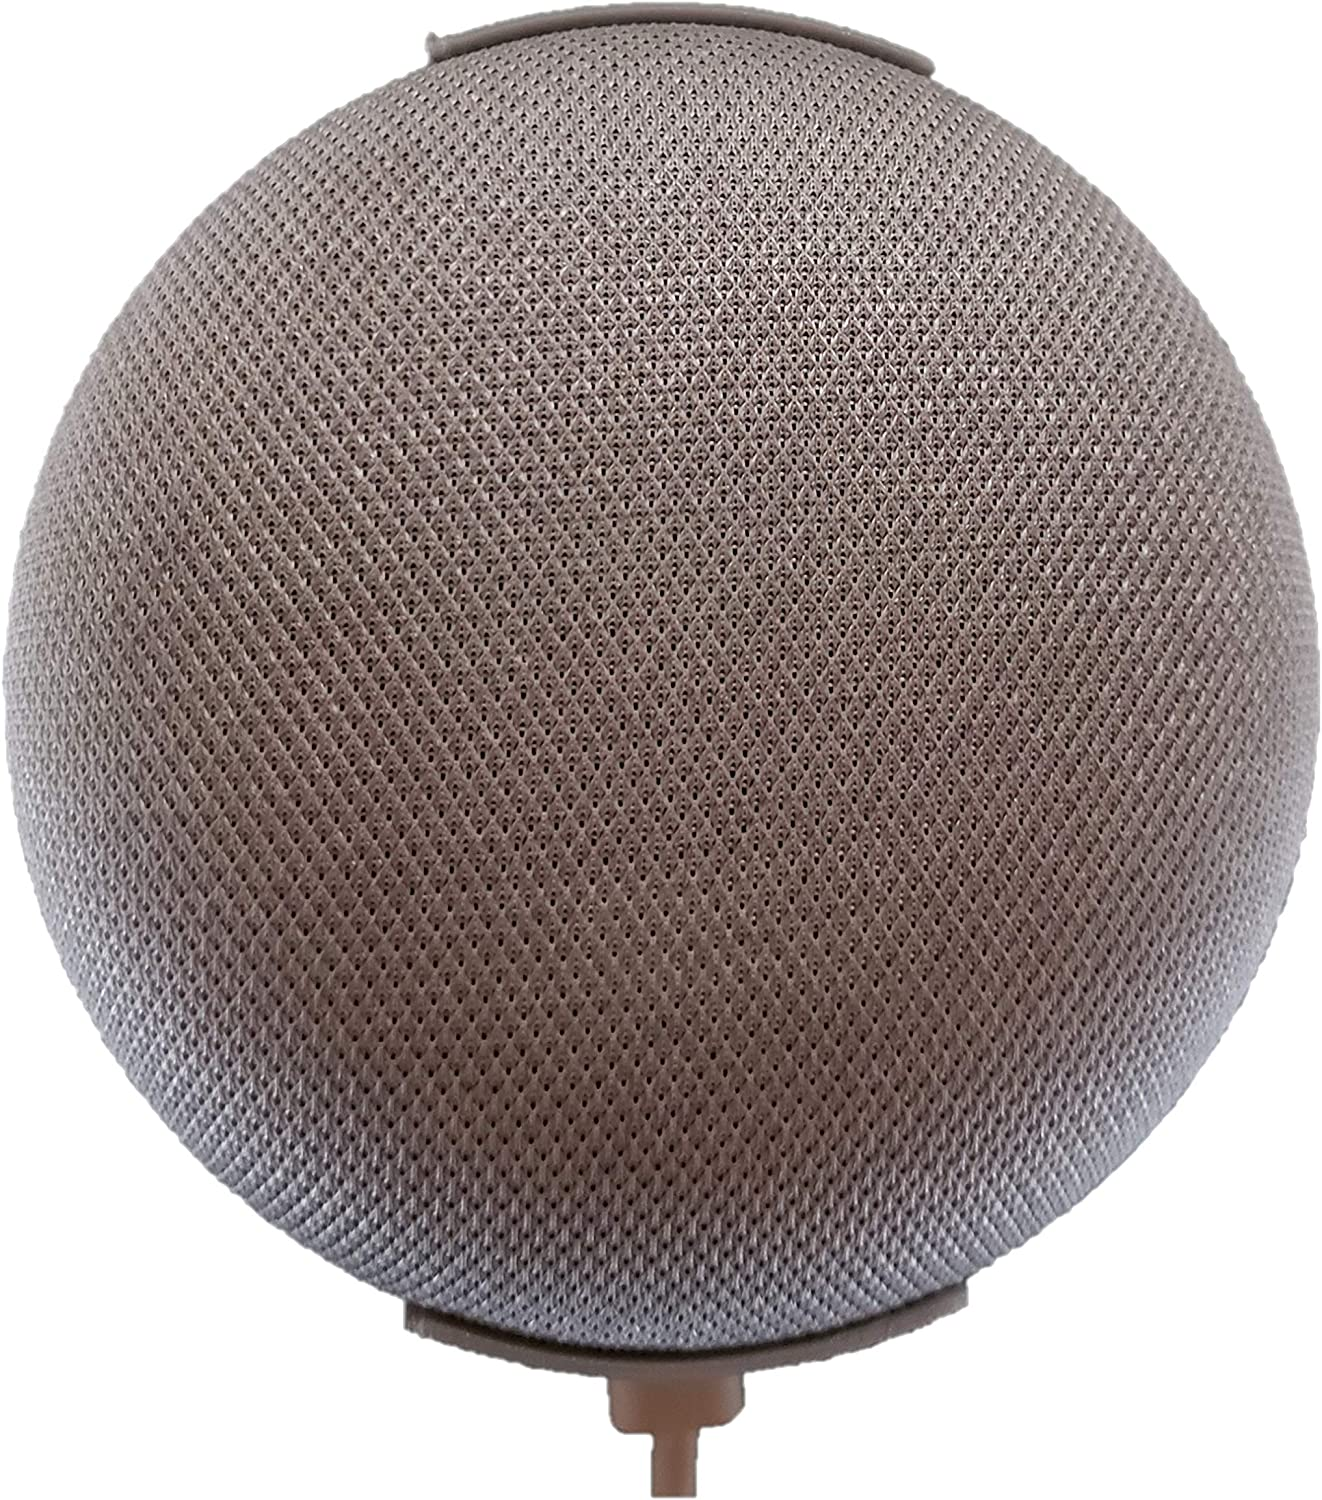 JR Decor Google Home/Nest Mini Wall or Ceiling Mount Support (Grey) with Double Sided Adhesive Included